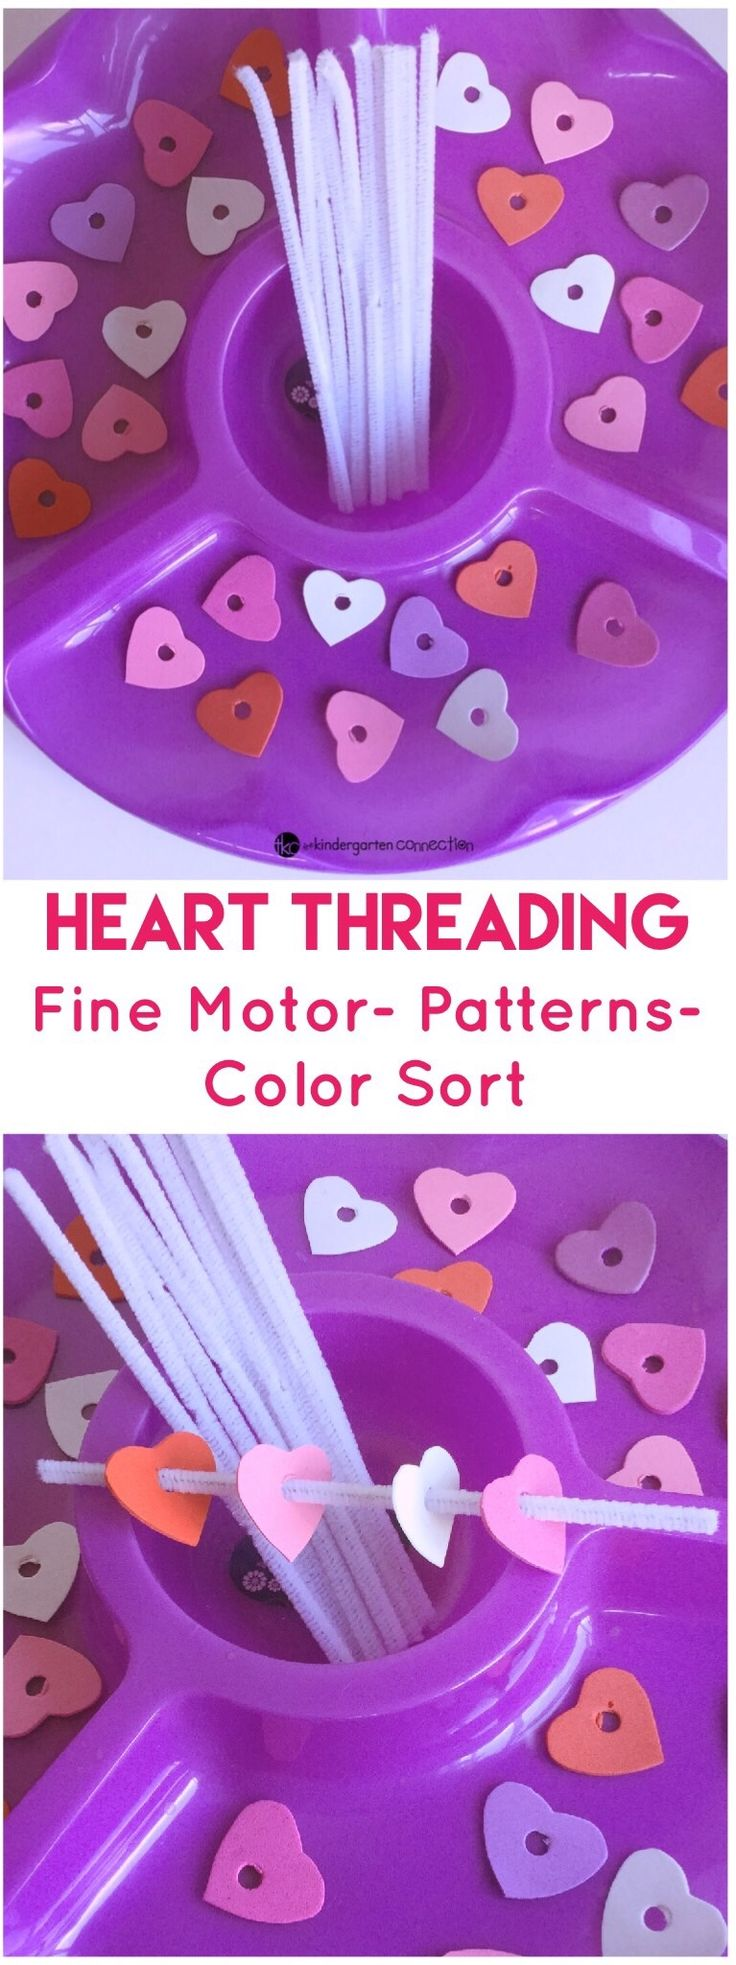 Your kids will have so much fun workingon fine motor skills, patterns, and color sorting with this heart threading fine motor and patterning activity tray!